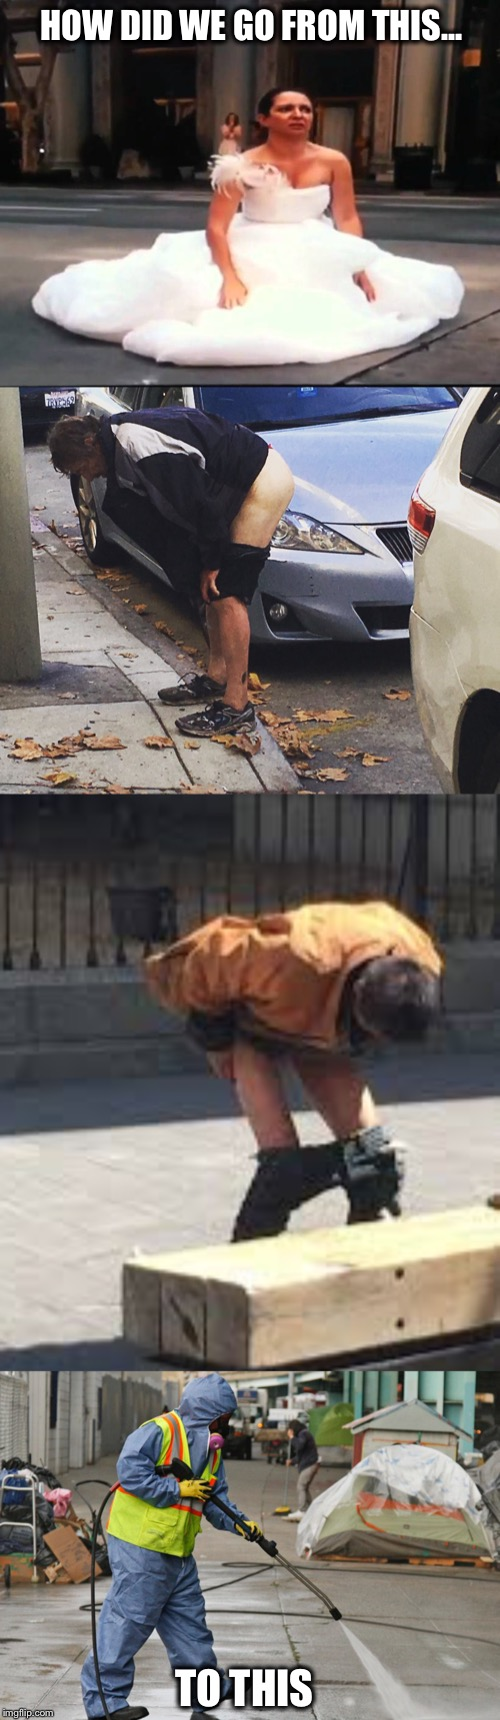 Shameless in SF:  Takin' it to the streets | HOW DID WE GO FROM THIS... TO THIS | image tagged in san francisco,bridesmaids,take a dump,homeless | made w/ Imgflip meme maker